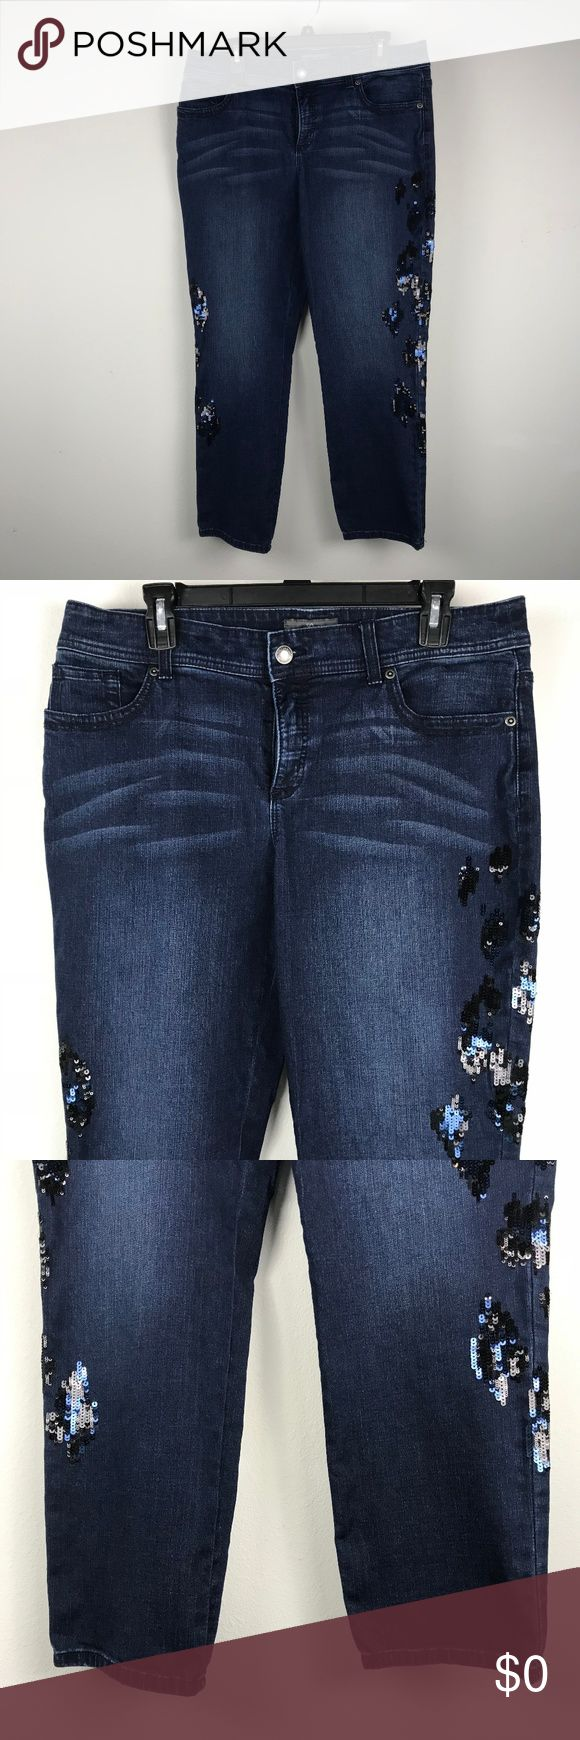 Chico's So Slimming Straight Cut Jeans Dark Sz 10 Brand: Chico's Buyer: Women Item: Jeans Material: Denim, Cotton Fit: So Slimming, Straight Cut Details: Dark wash, sequin Size: 1.5 - M 10 Color: Blue Condition: Excellent pre-owned condition, no flaws   Measurements: Waist Across Laying Flat: 17 inches Rise: 10 inches Inseam: 27.5 inches  Location: GG20 Weight: Flat Chico's Jeans Straight Leg